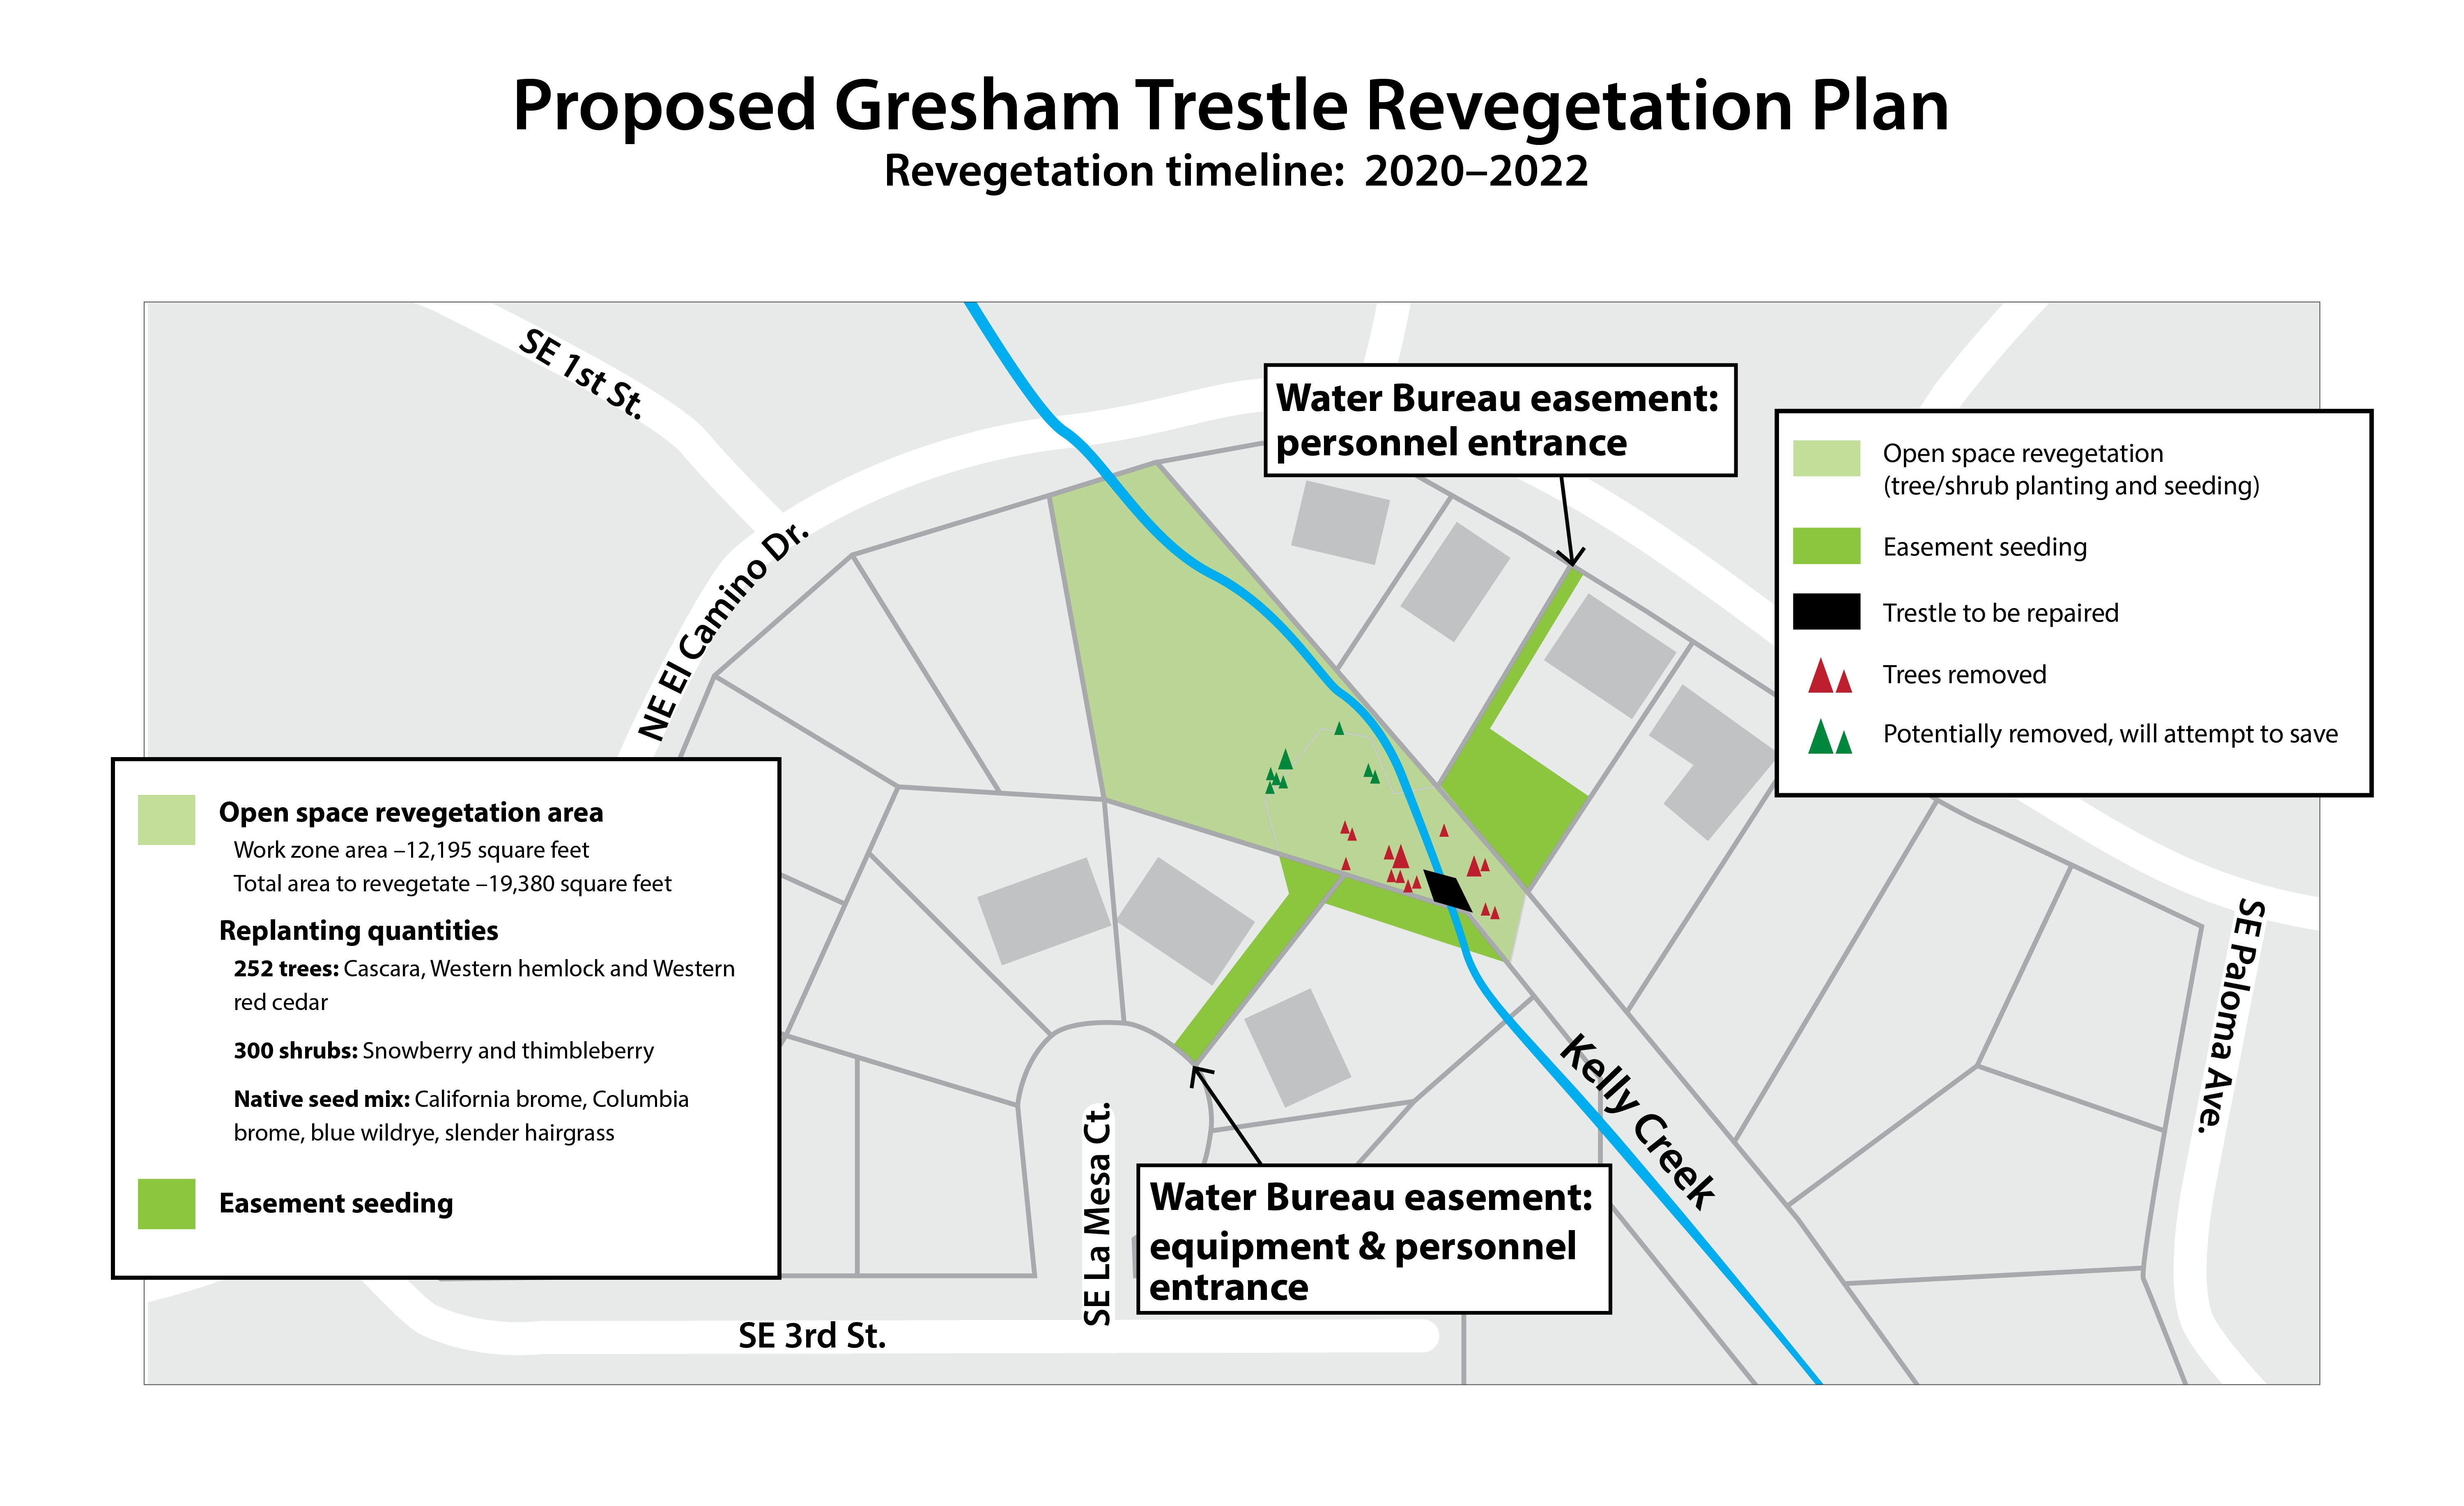 A map shows trees that will be removed, as well as the area where native plants will be planted in the work zone and open space. It shows examples of native trees, shrubs and grasses that will be used.